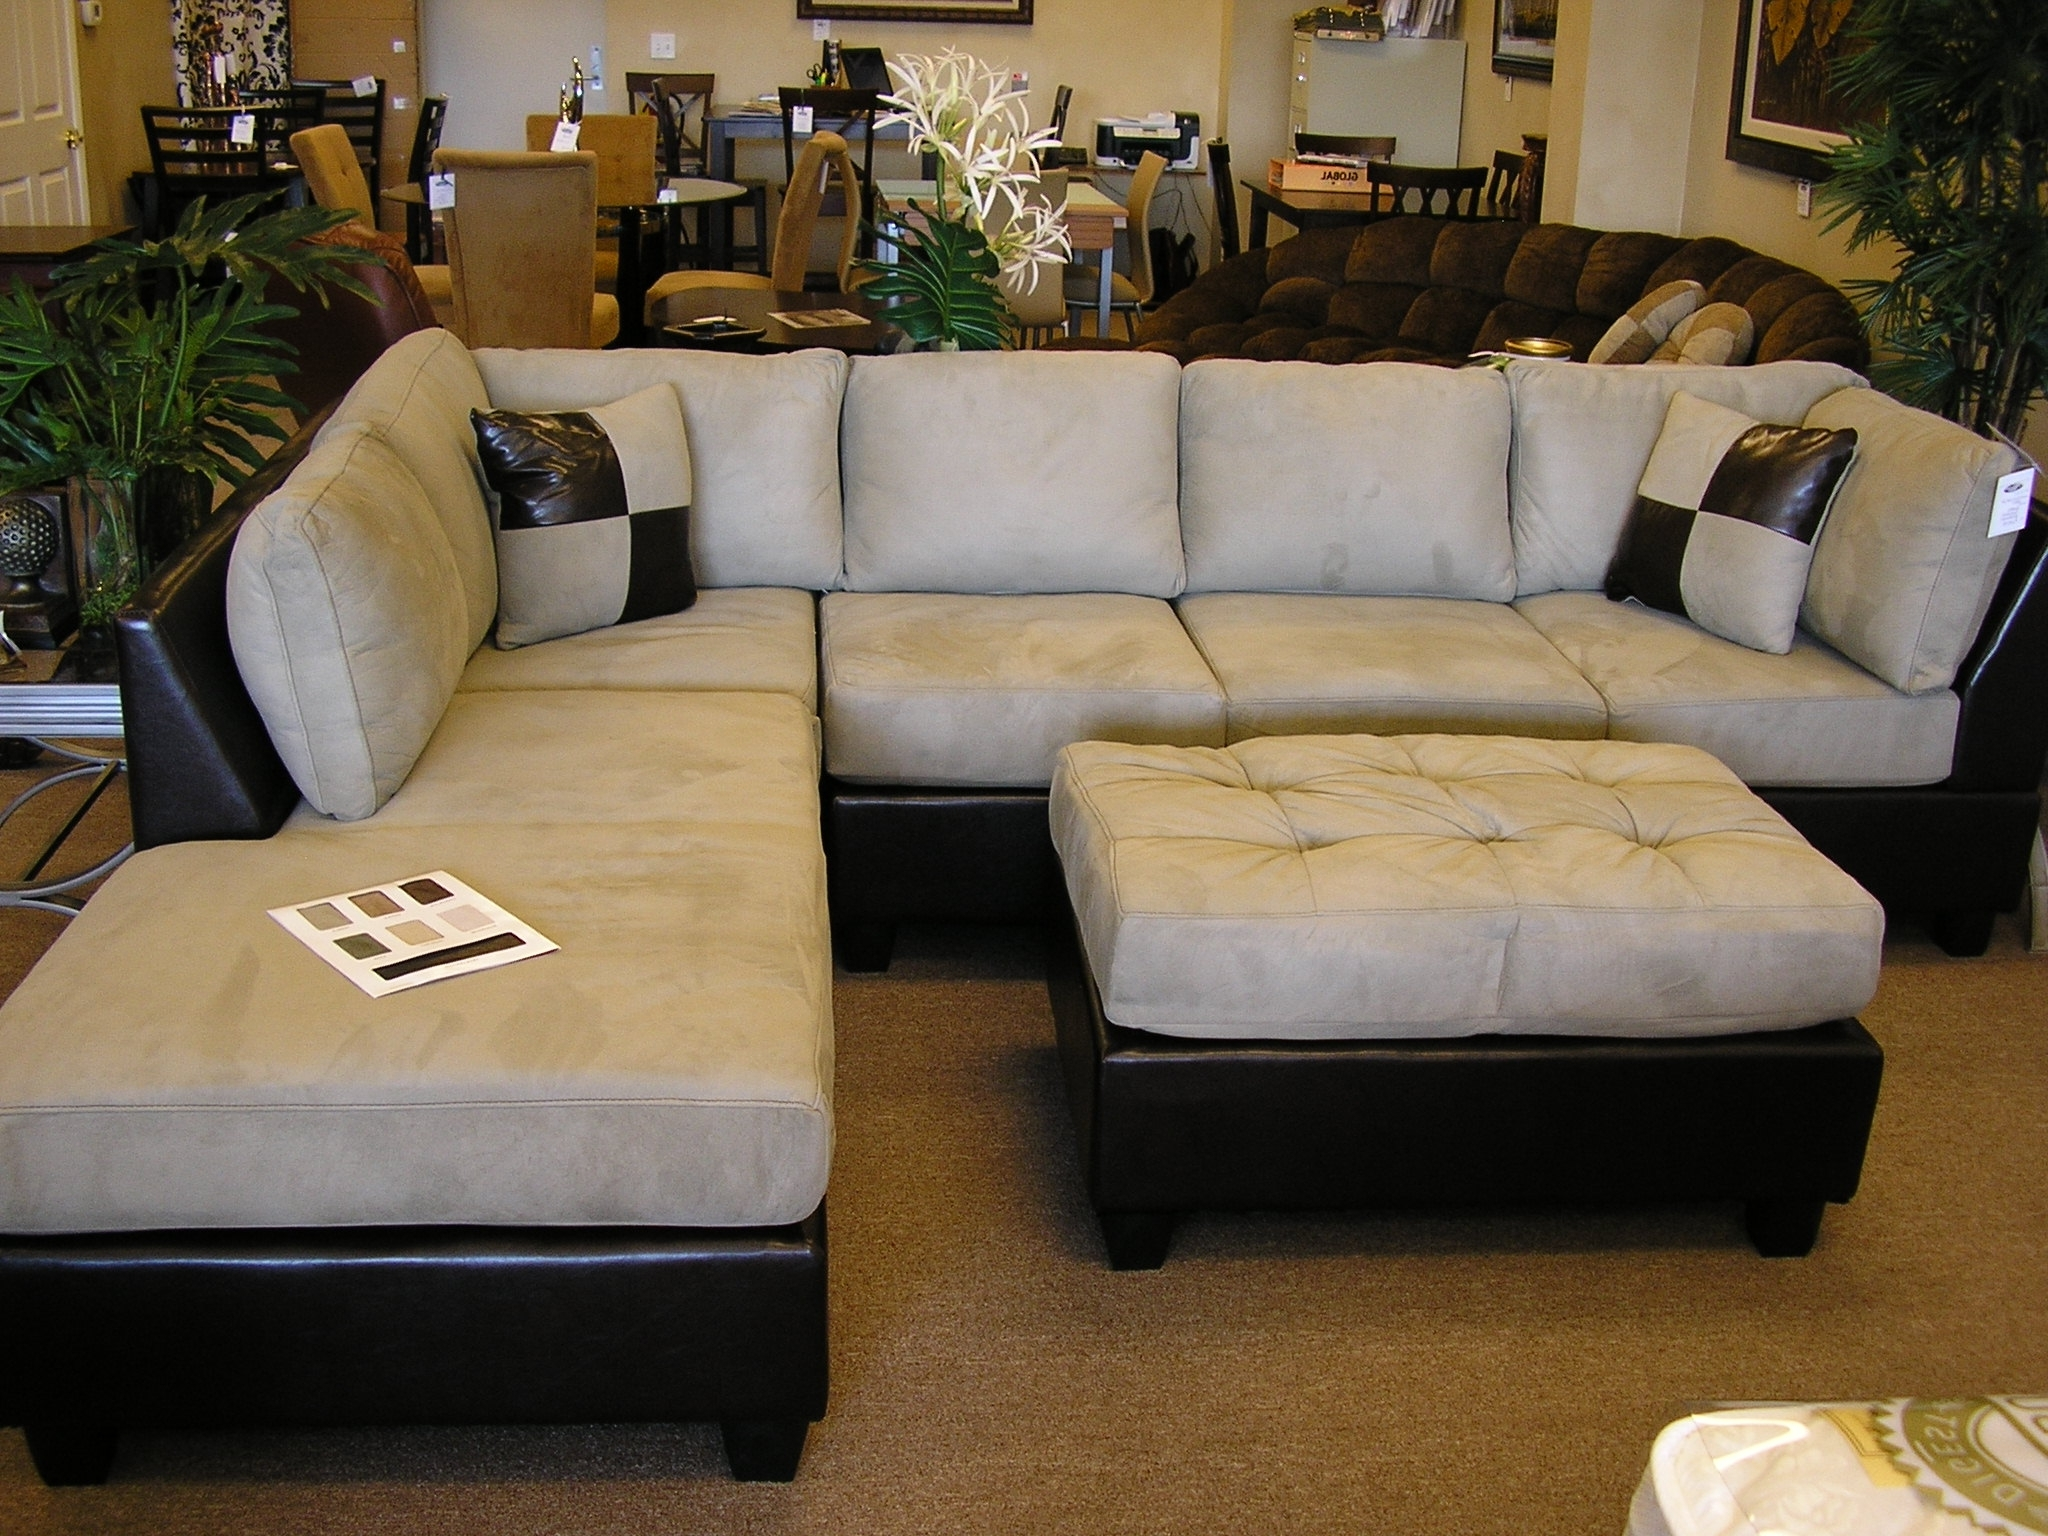 Favorite Furniture: Inspiring Interior Furniture Ideas With Talsma Pertaining To Grand Rapids Mi Sectional Sofas (View 4 of 20)